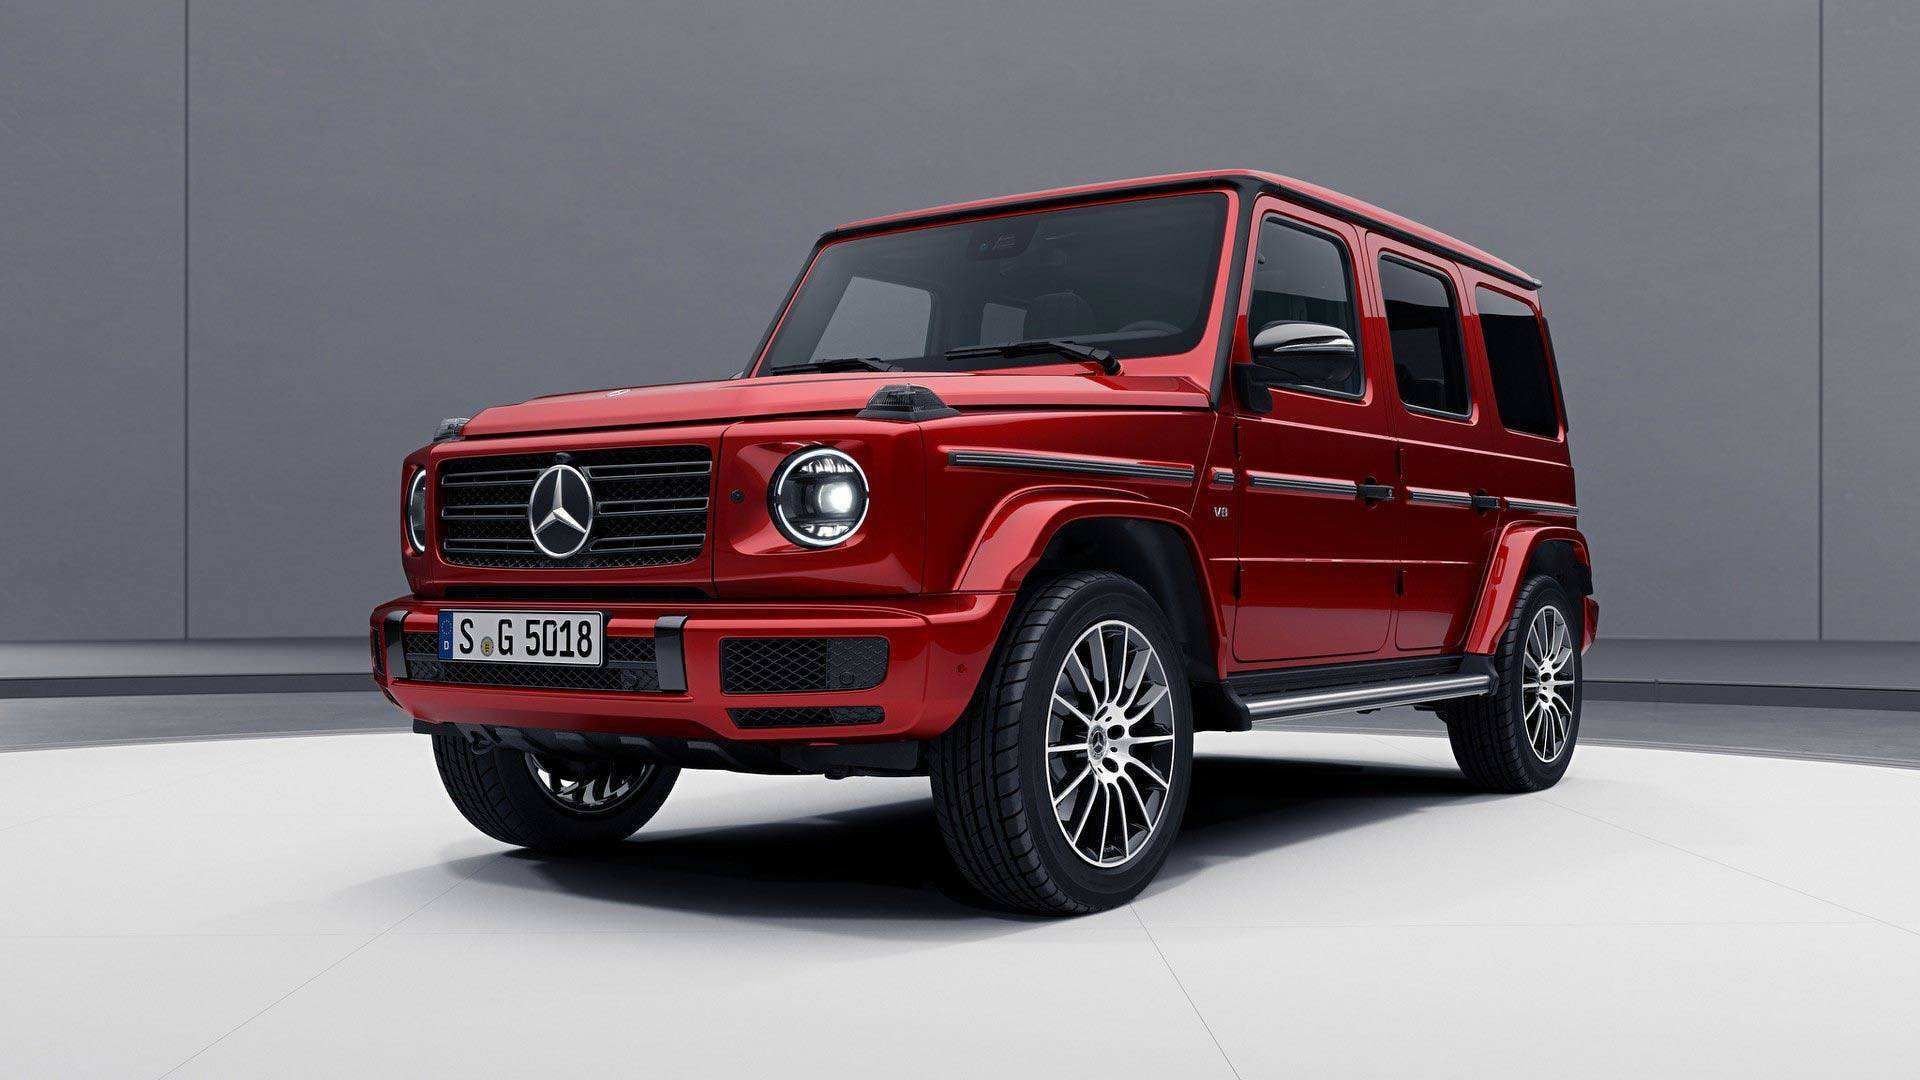 91 Best Review Mercedes G 2020 New Concept Specs and Review by Mercedes G 2020 New Concept